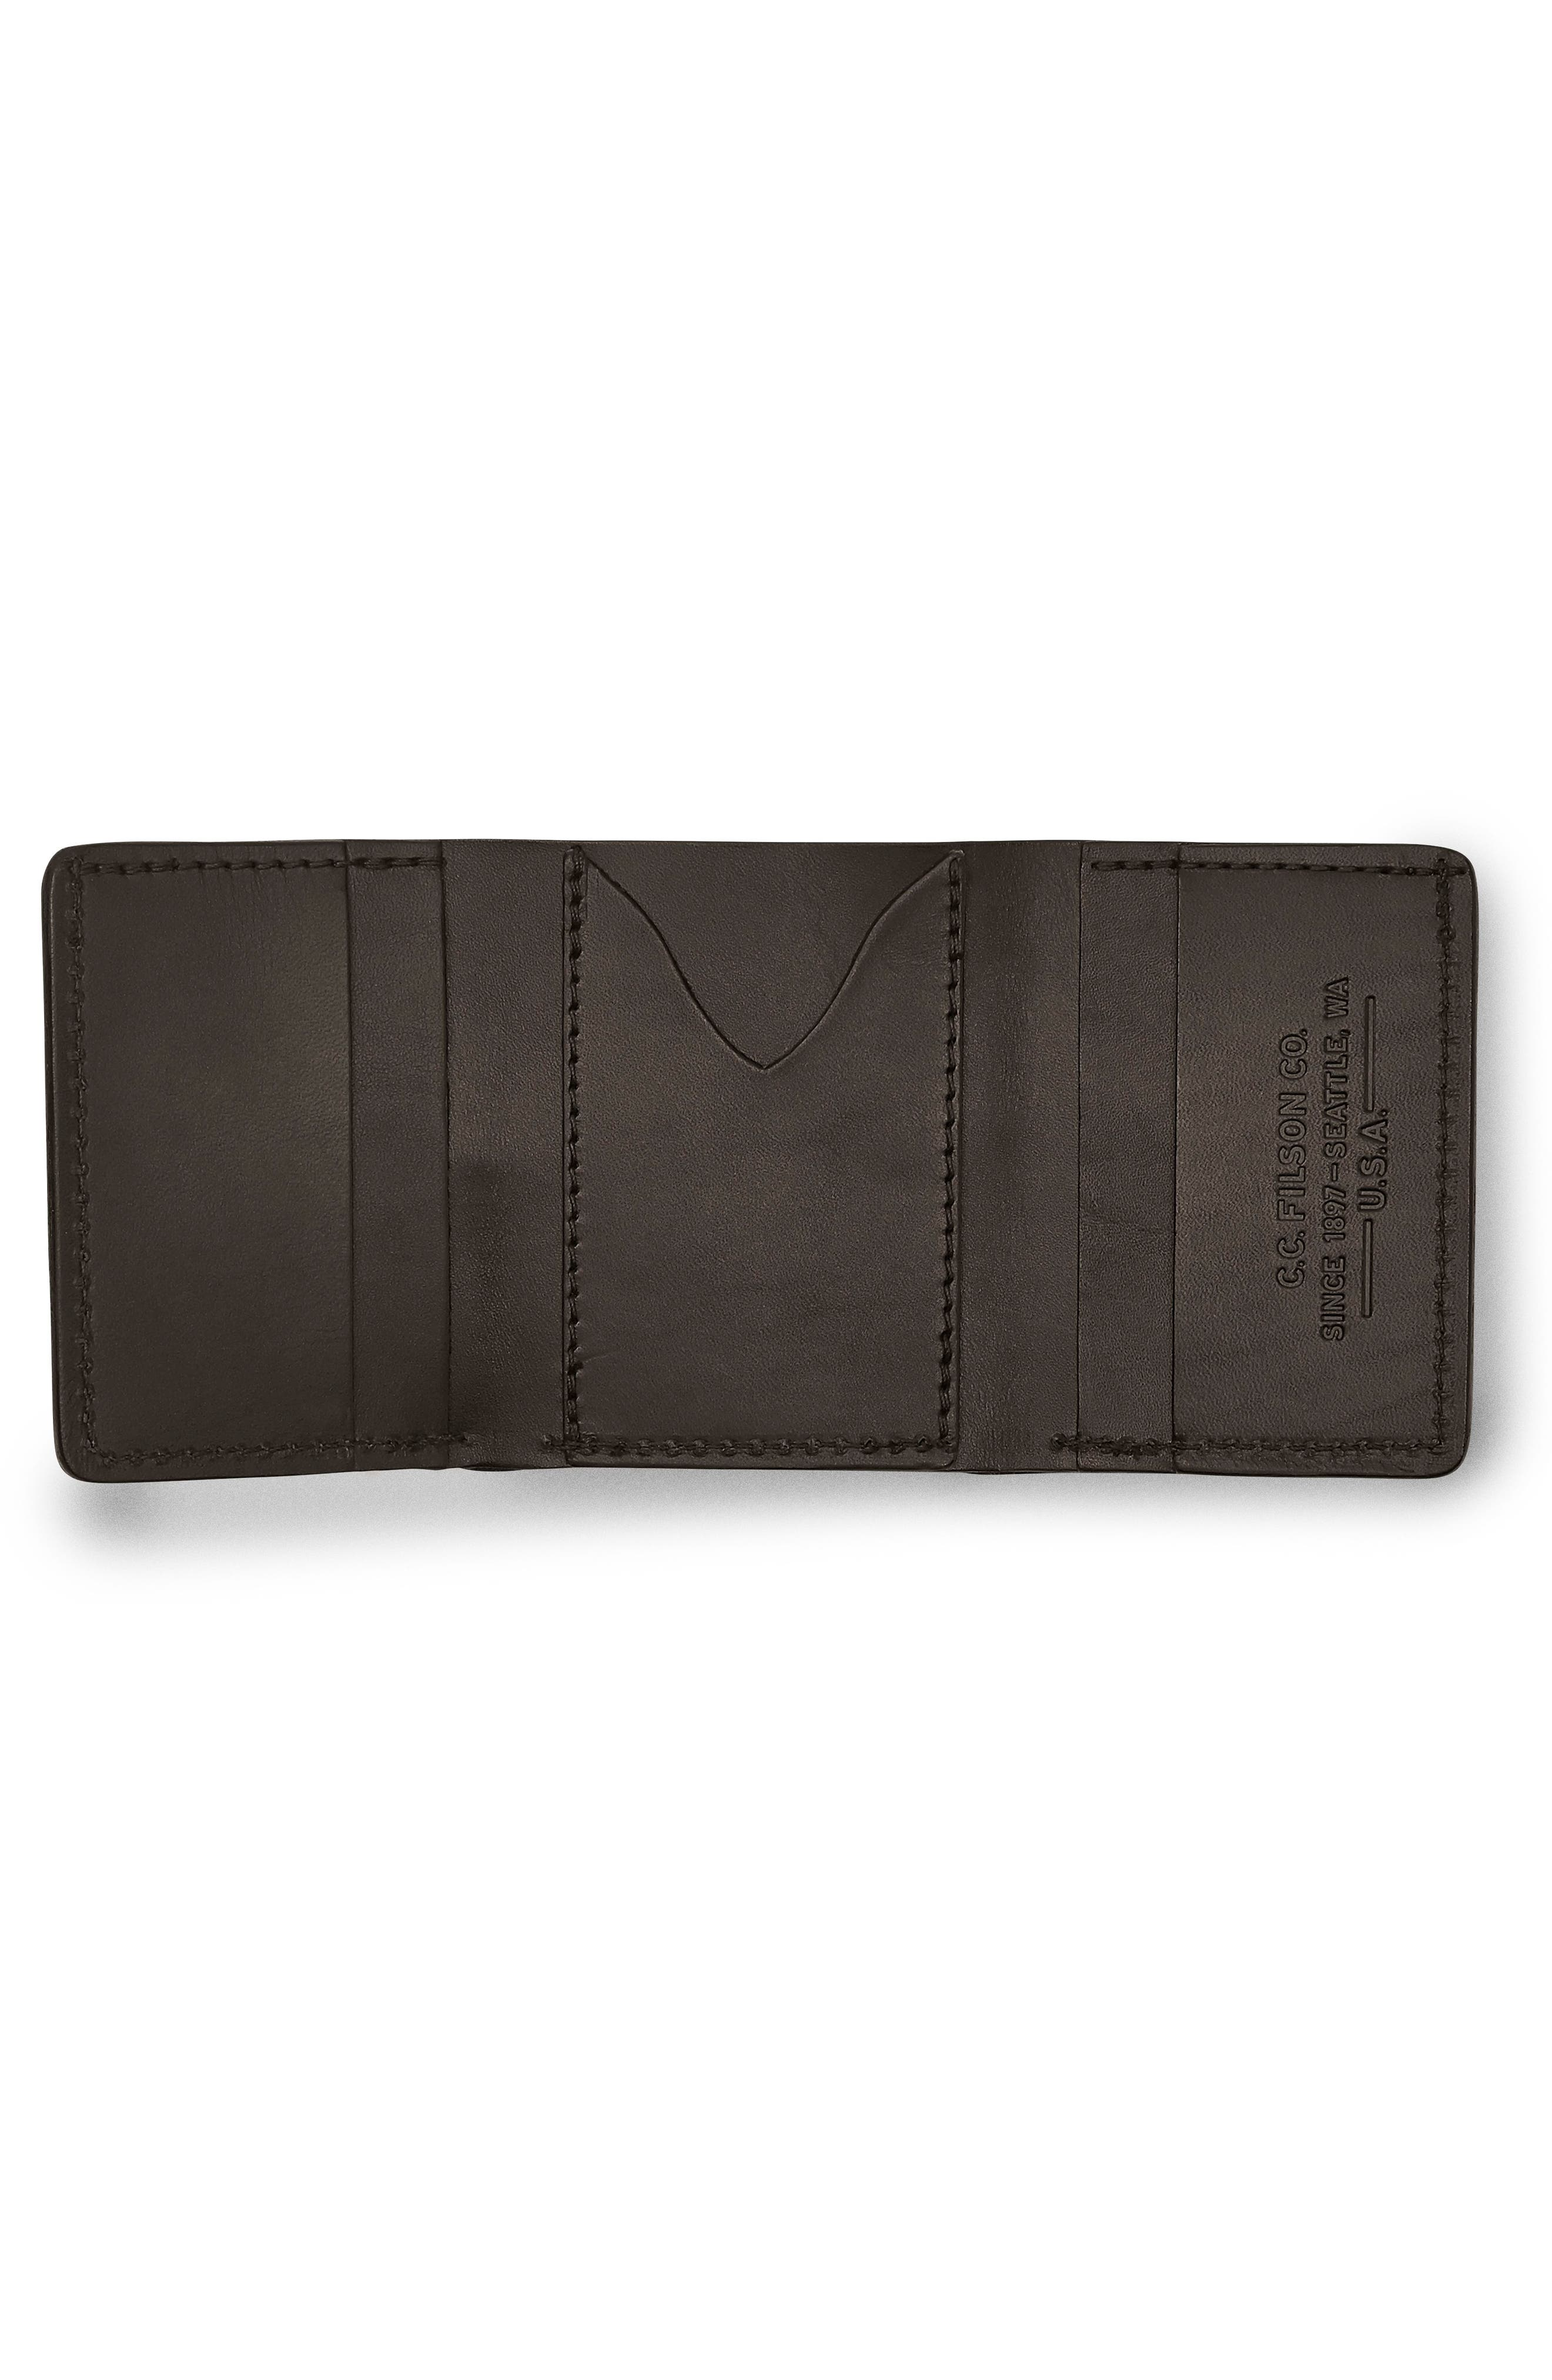 Leather Trifold Leather Wallet,                             Alternate thumbnail 6, color,